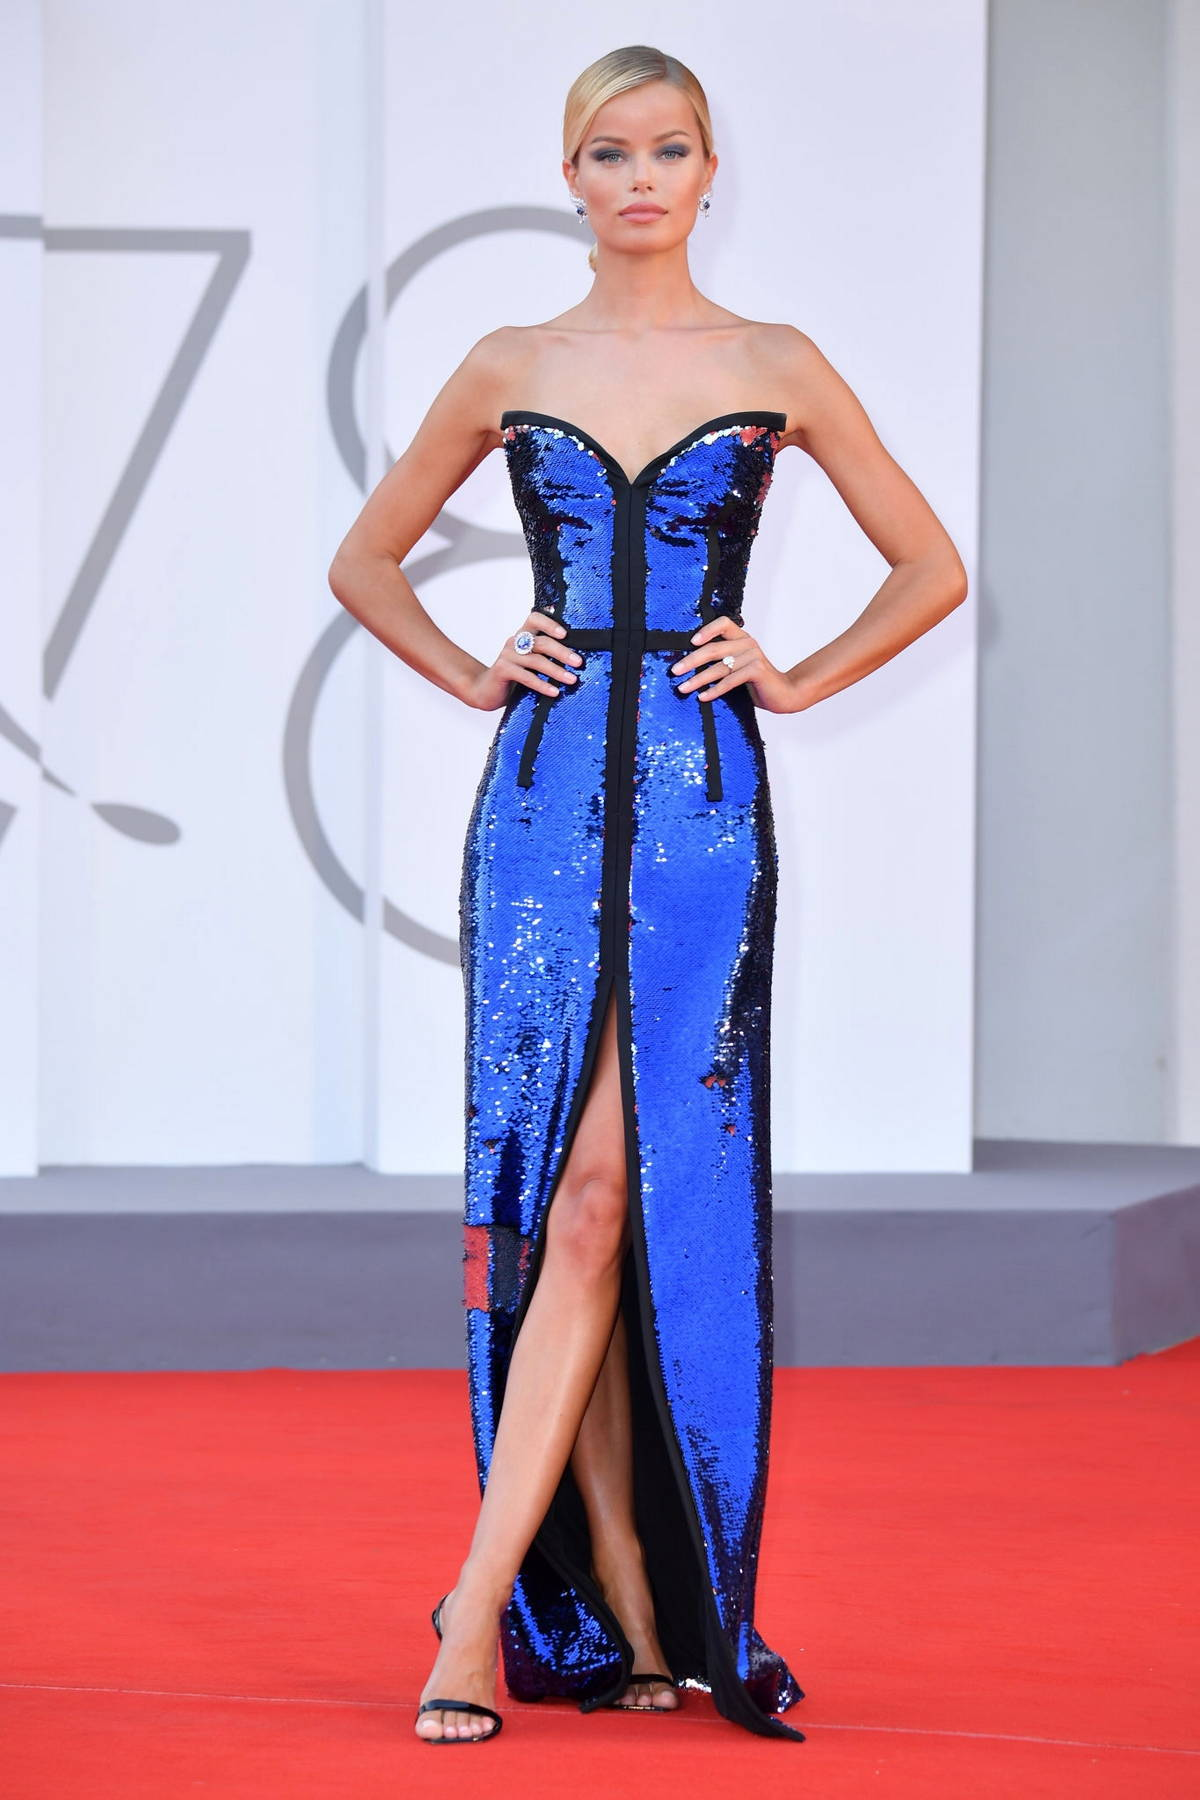 Frida Aasen attends the Premiere of 'Un Autre Monde' during the 78th Venice International Film Festival in Venice, Italy